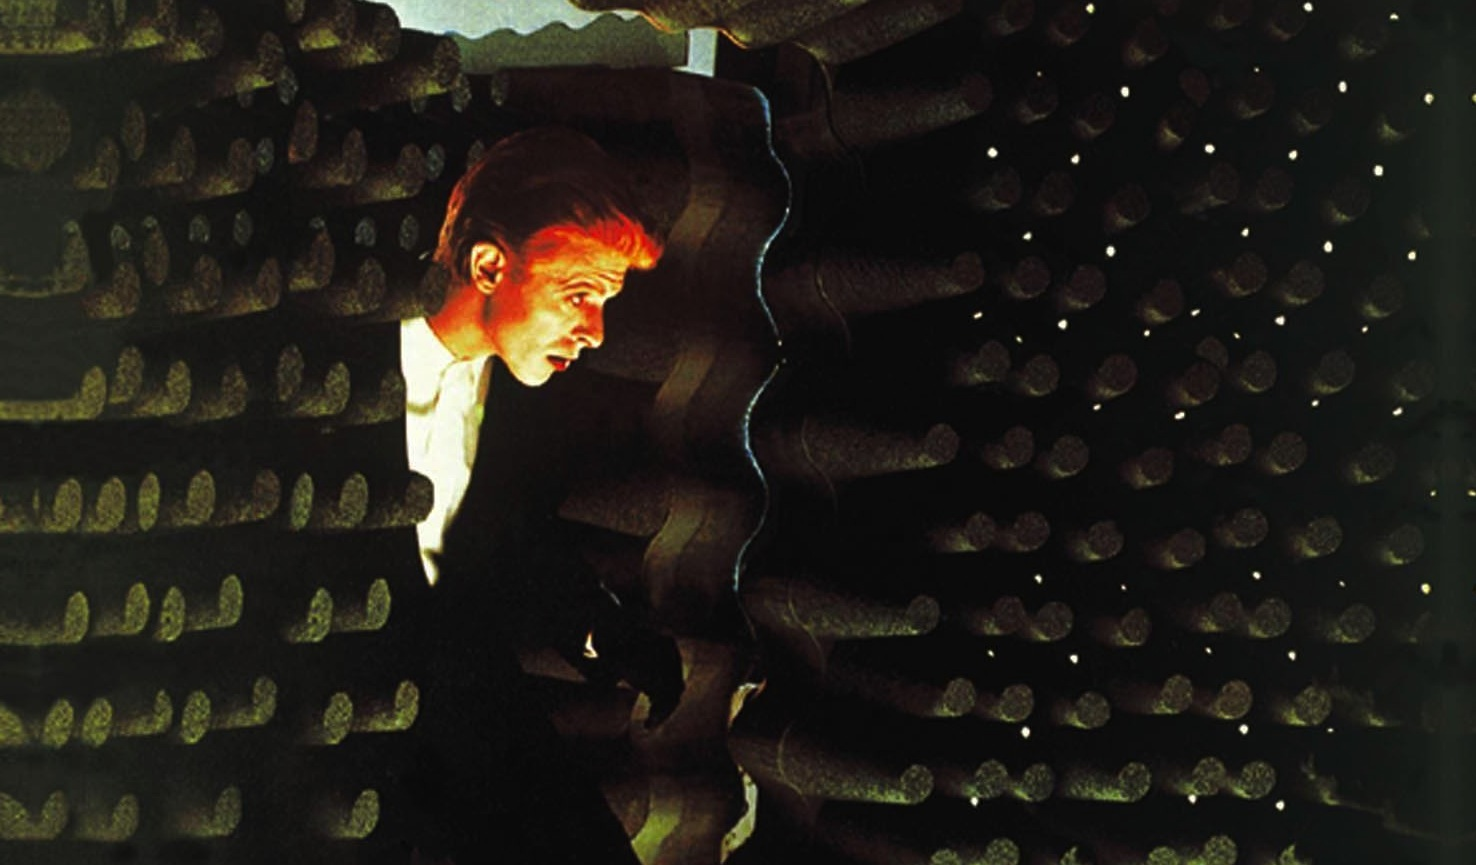 David Bowie Station to Station Hall of Fame